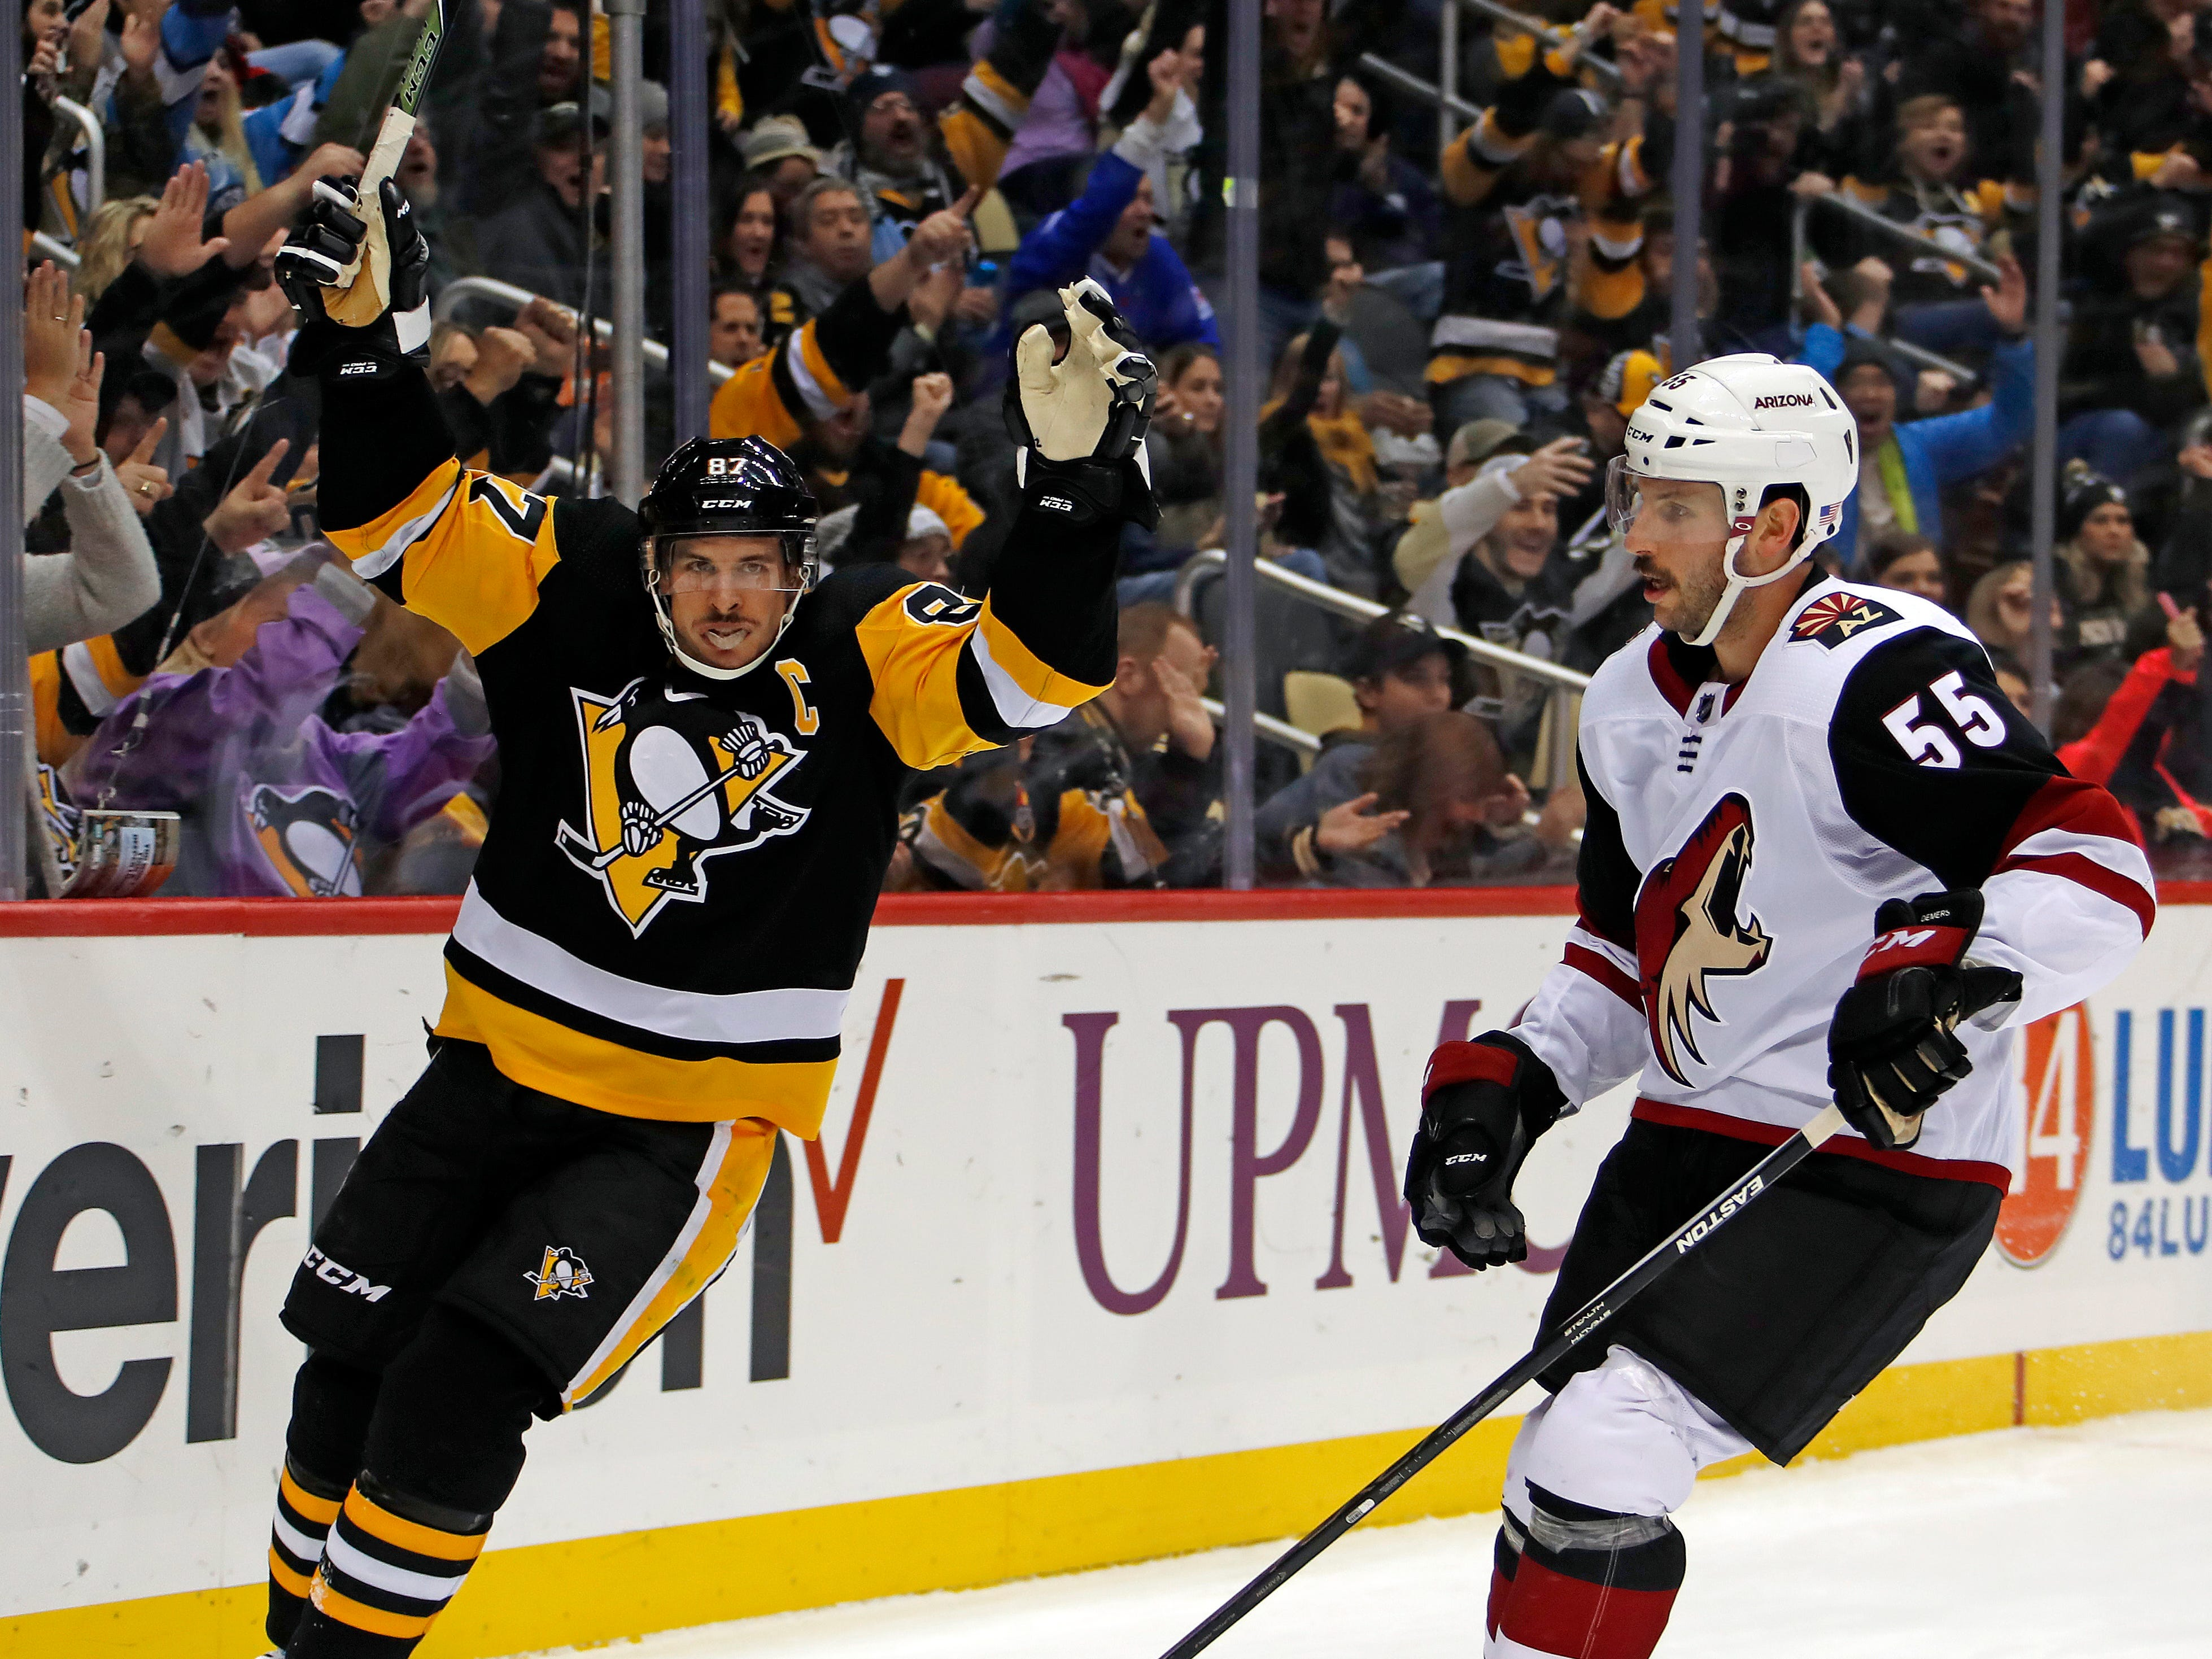 Pittsburgh Penguins' Sidney Crosby (87) celebrates his goal in front of Arizona Coyotes' Jason Demers (55) in the second period of an NHL hockey game in Pittsburgh, Saturday, Nov. 10, 2018. (AP Photo/Gene J. Puskar)